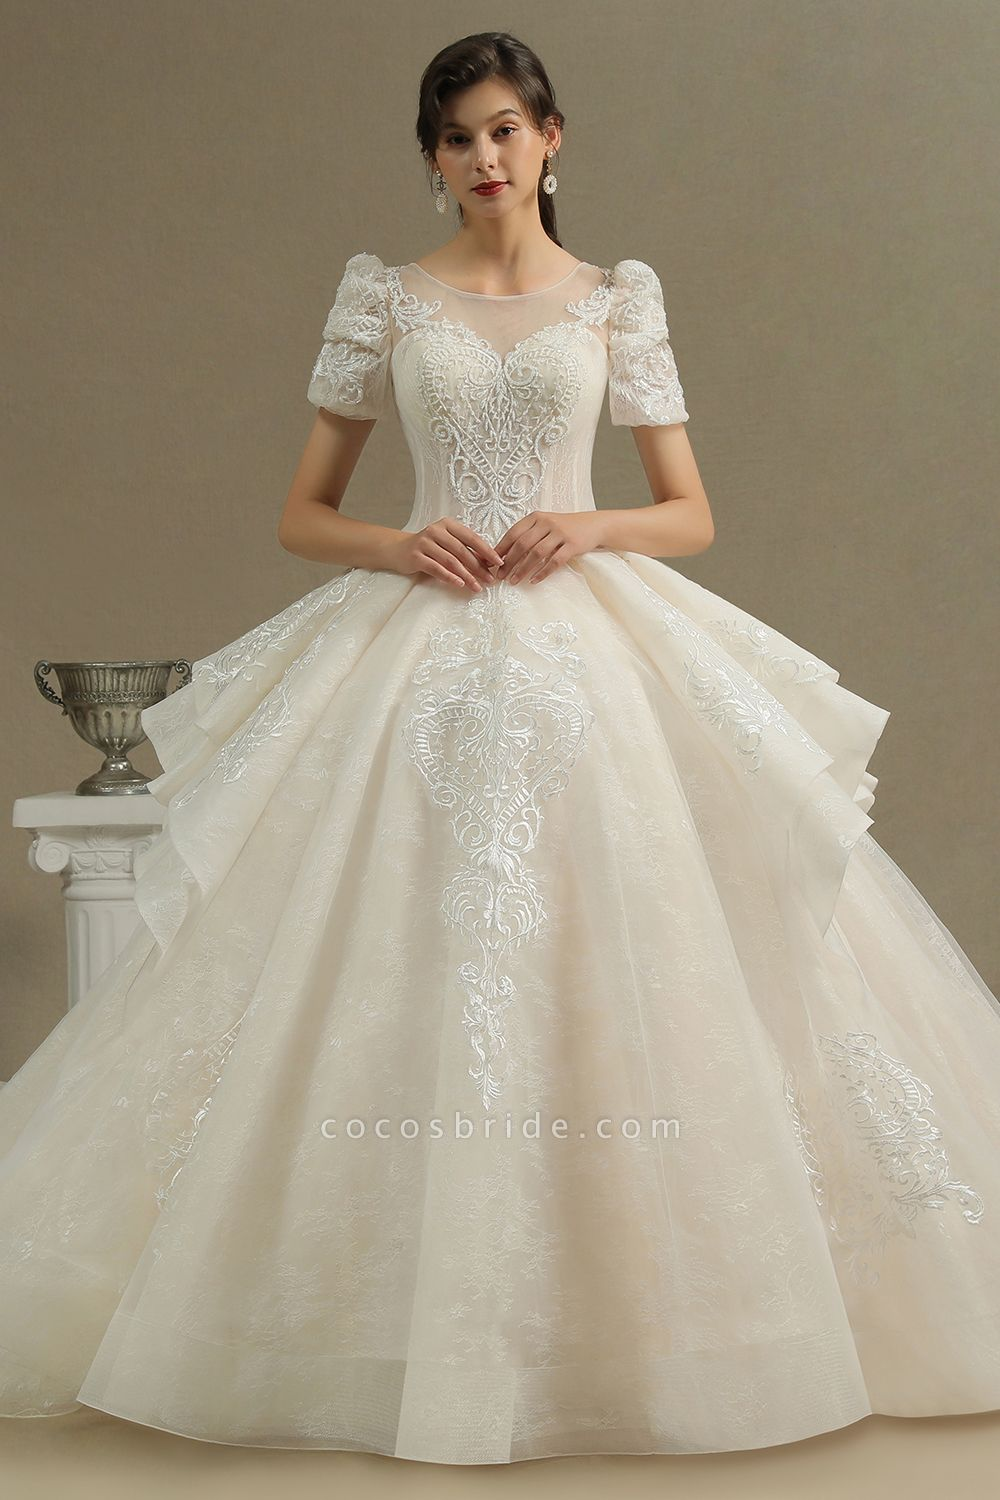 CPH222 Short Sleeve Garden Bridal Gown Sweetheart Luxury Wedding Dresses with Sweep Train